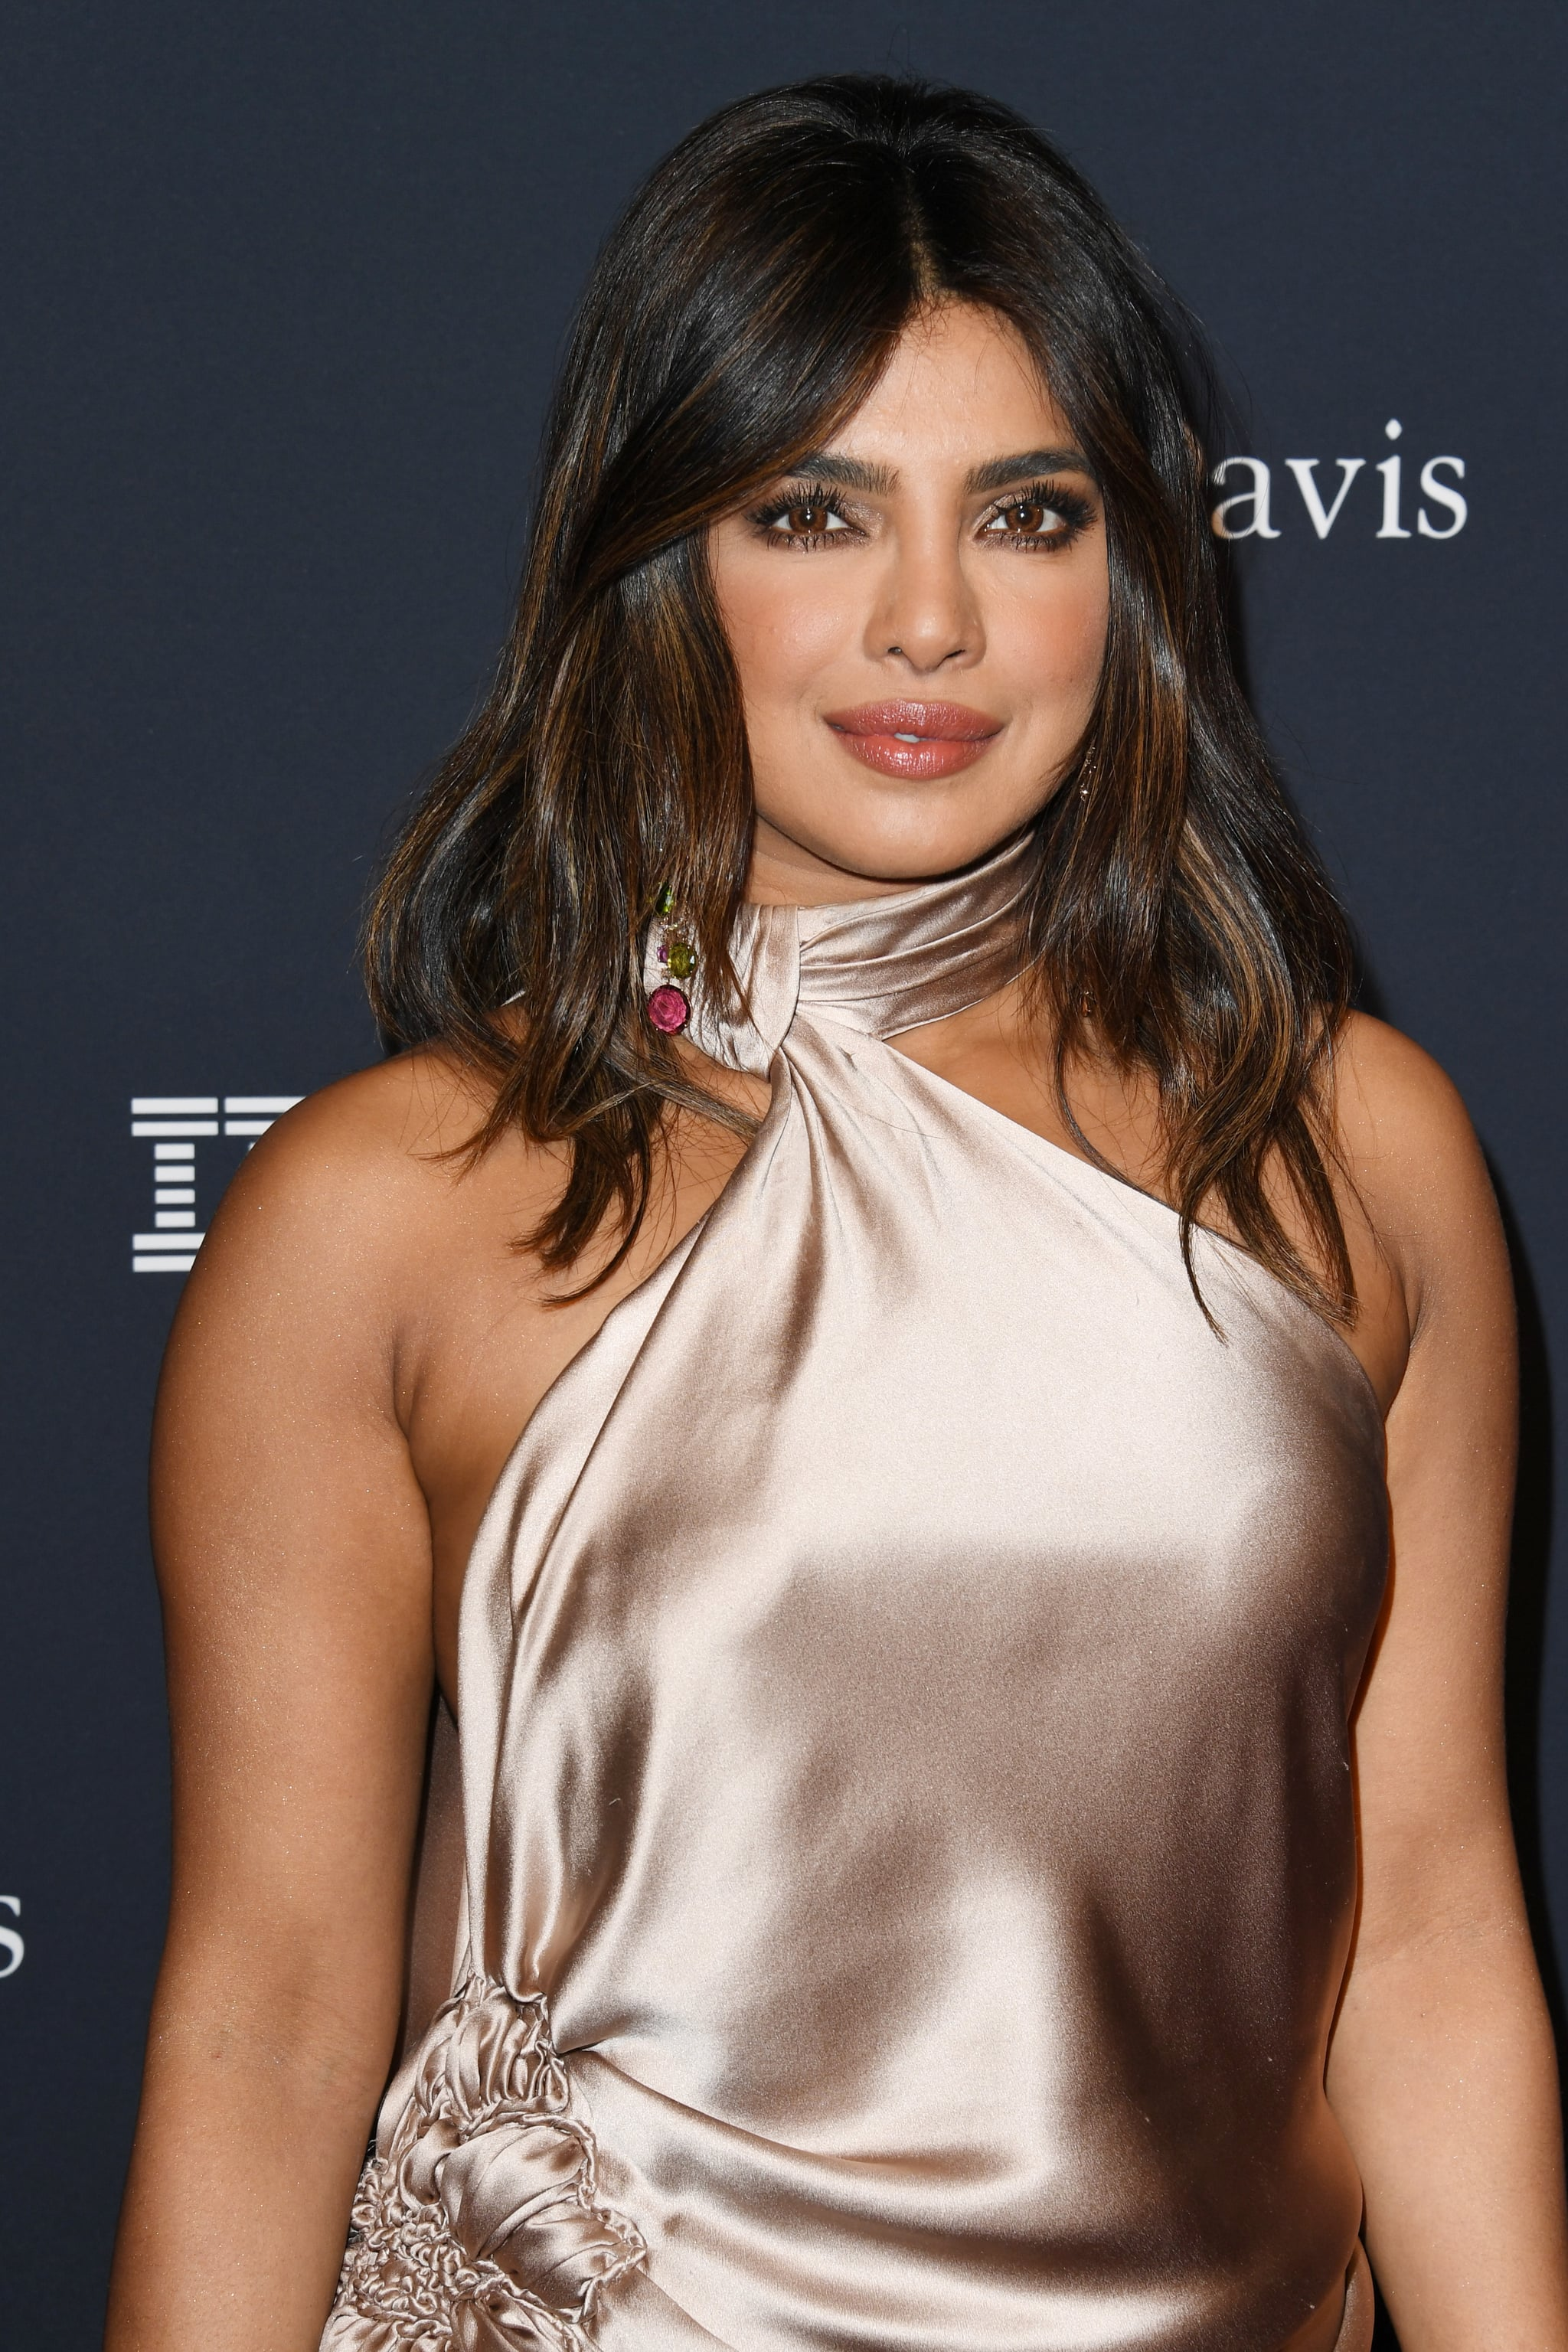 BEVERLY HILLS, CALIFORNIA - JANUARY 25: Priyanka Chopra attends the Pre-GRAMMY Gala and GRAMMY Salute to Industry Icons Honoring Sean